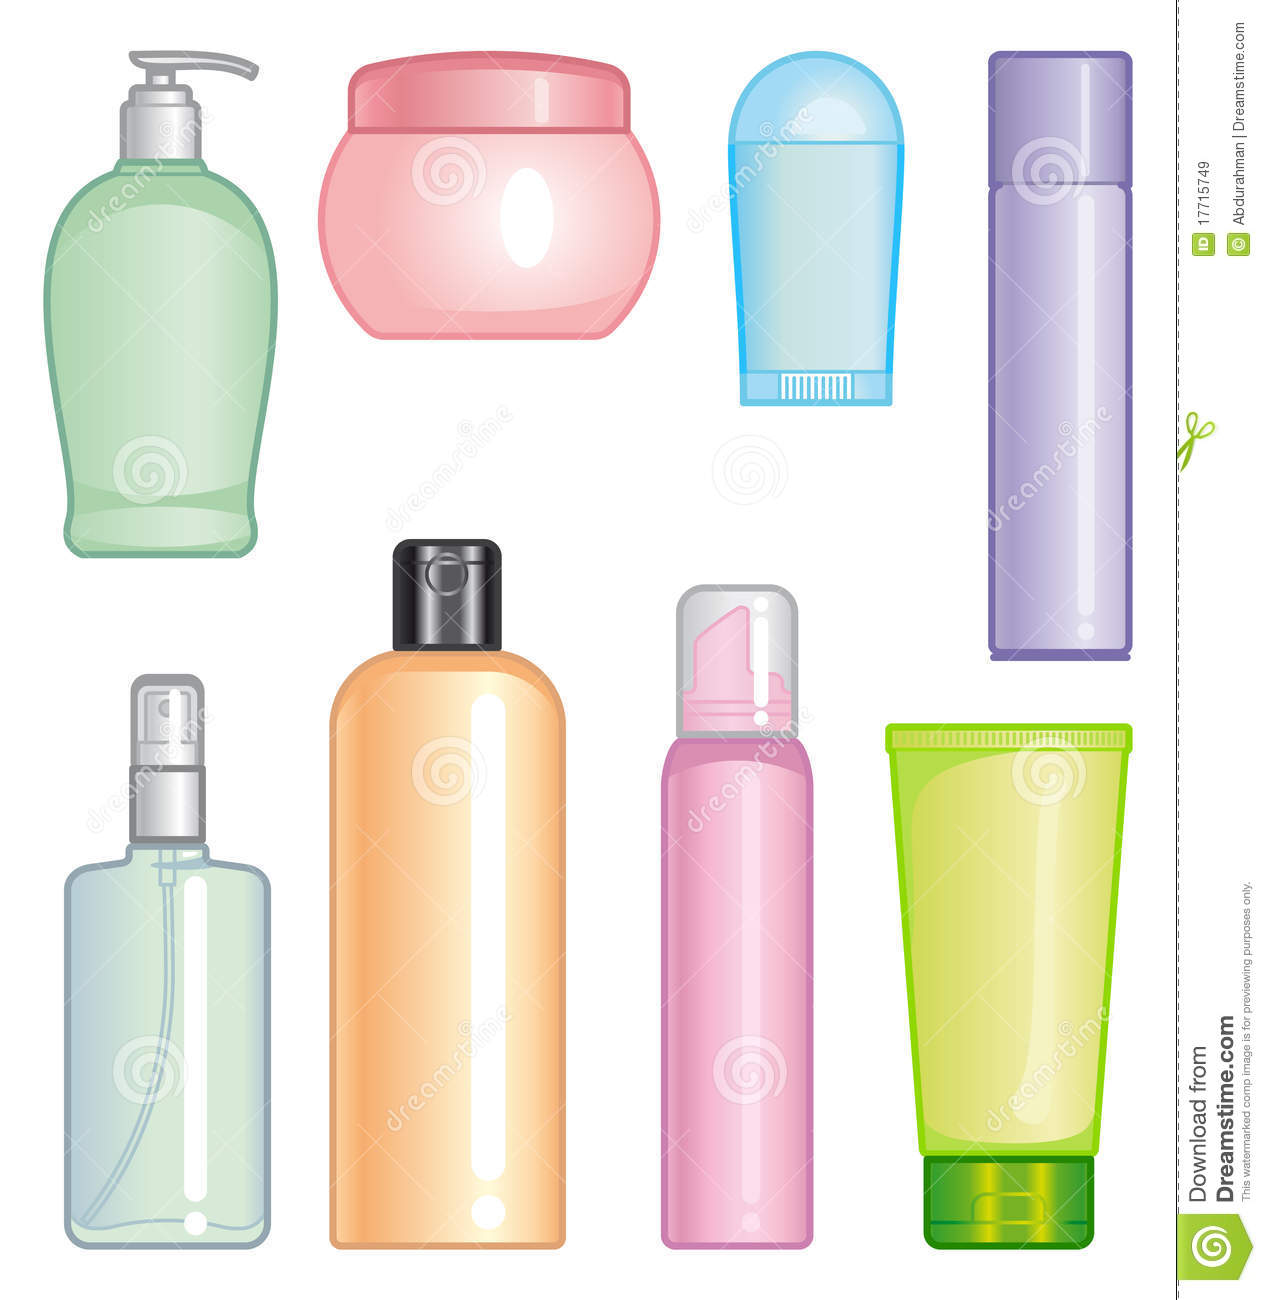 Bottles Of Cosmetic Products Royalty Free Stock Images - Image ...